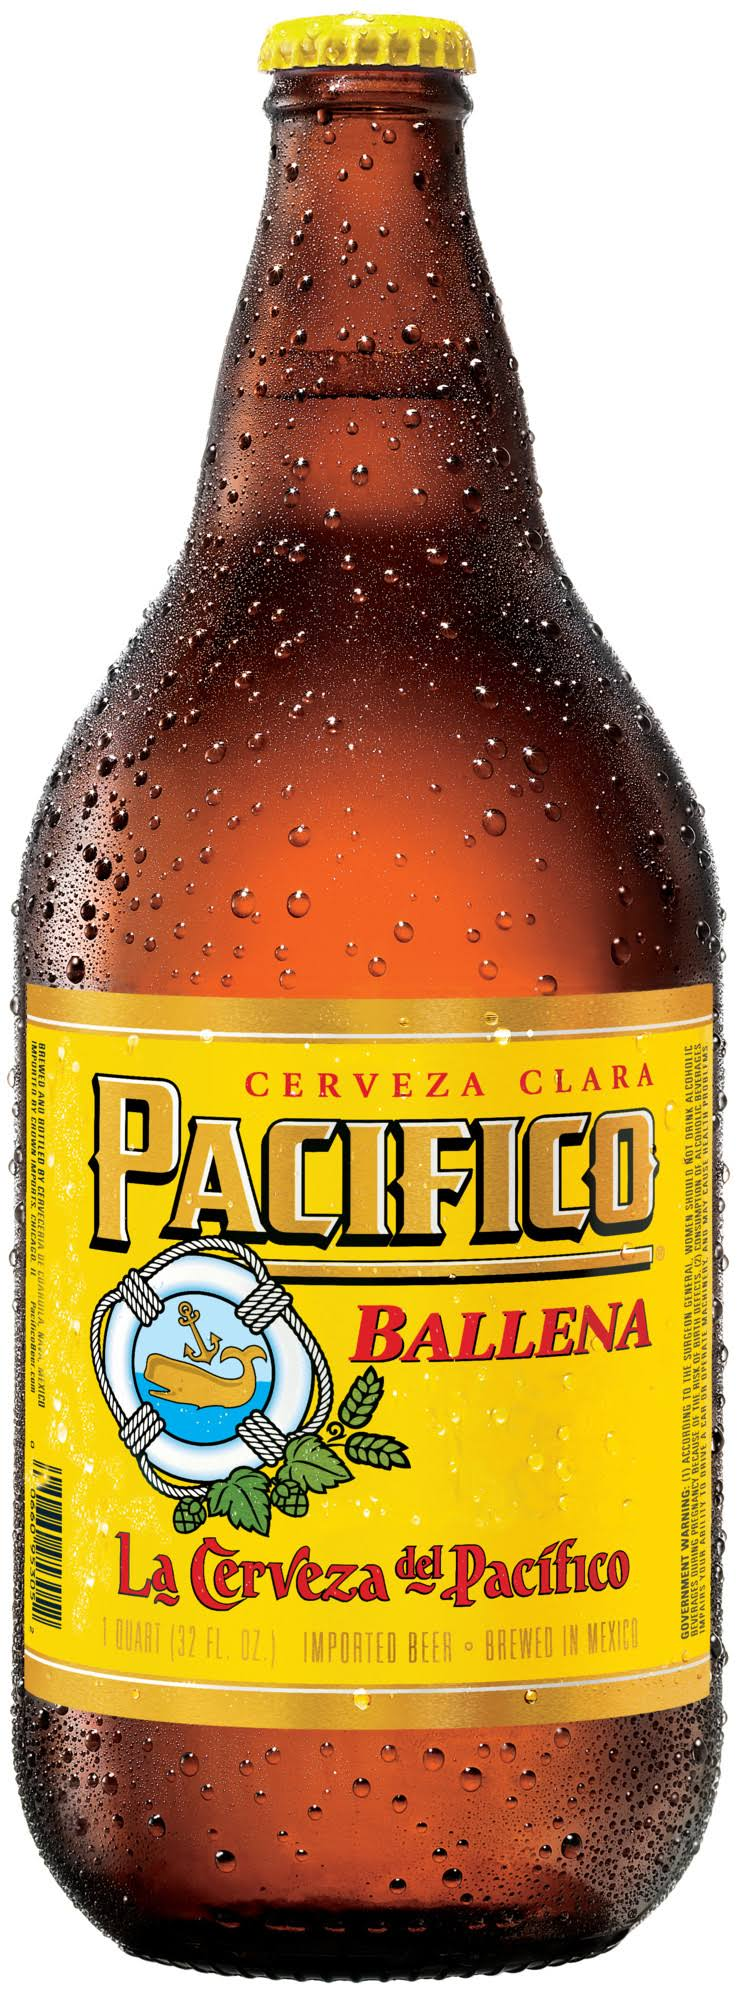 Pacifico Ballena Pilsner - 32 fl oz bottle